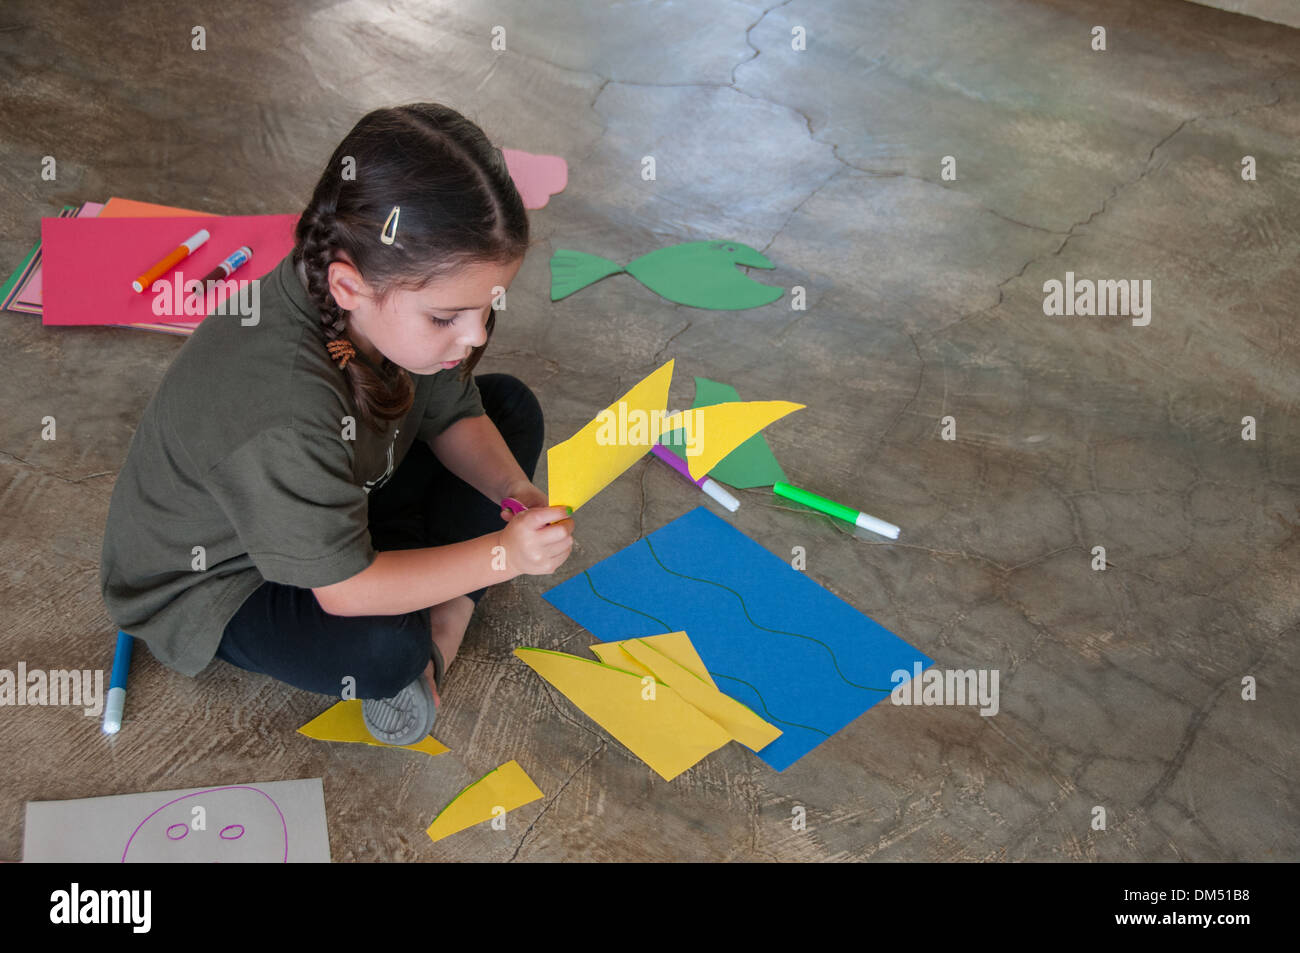 Girl and crafts - Stock Image